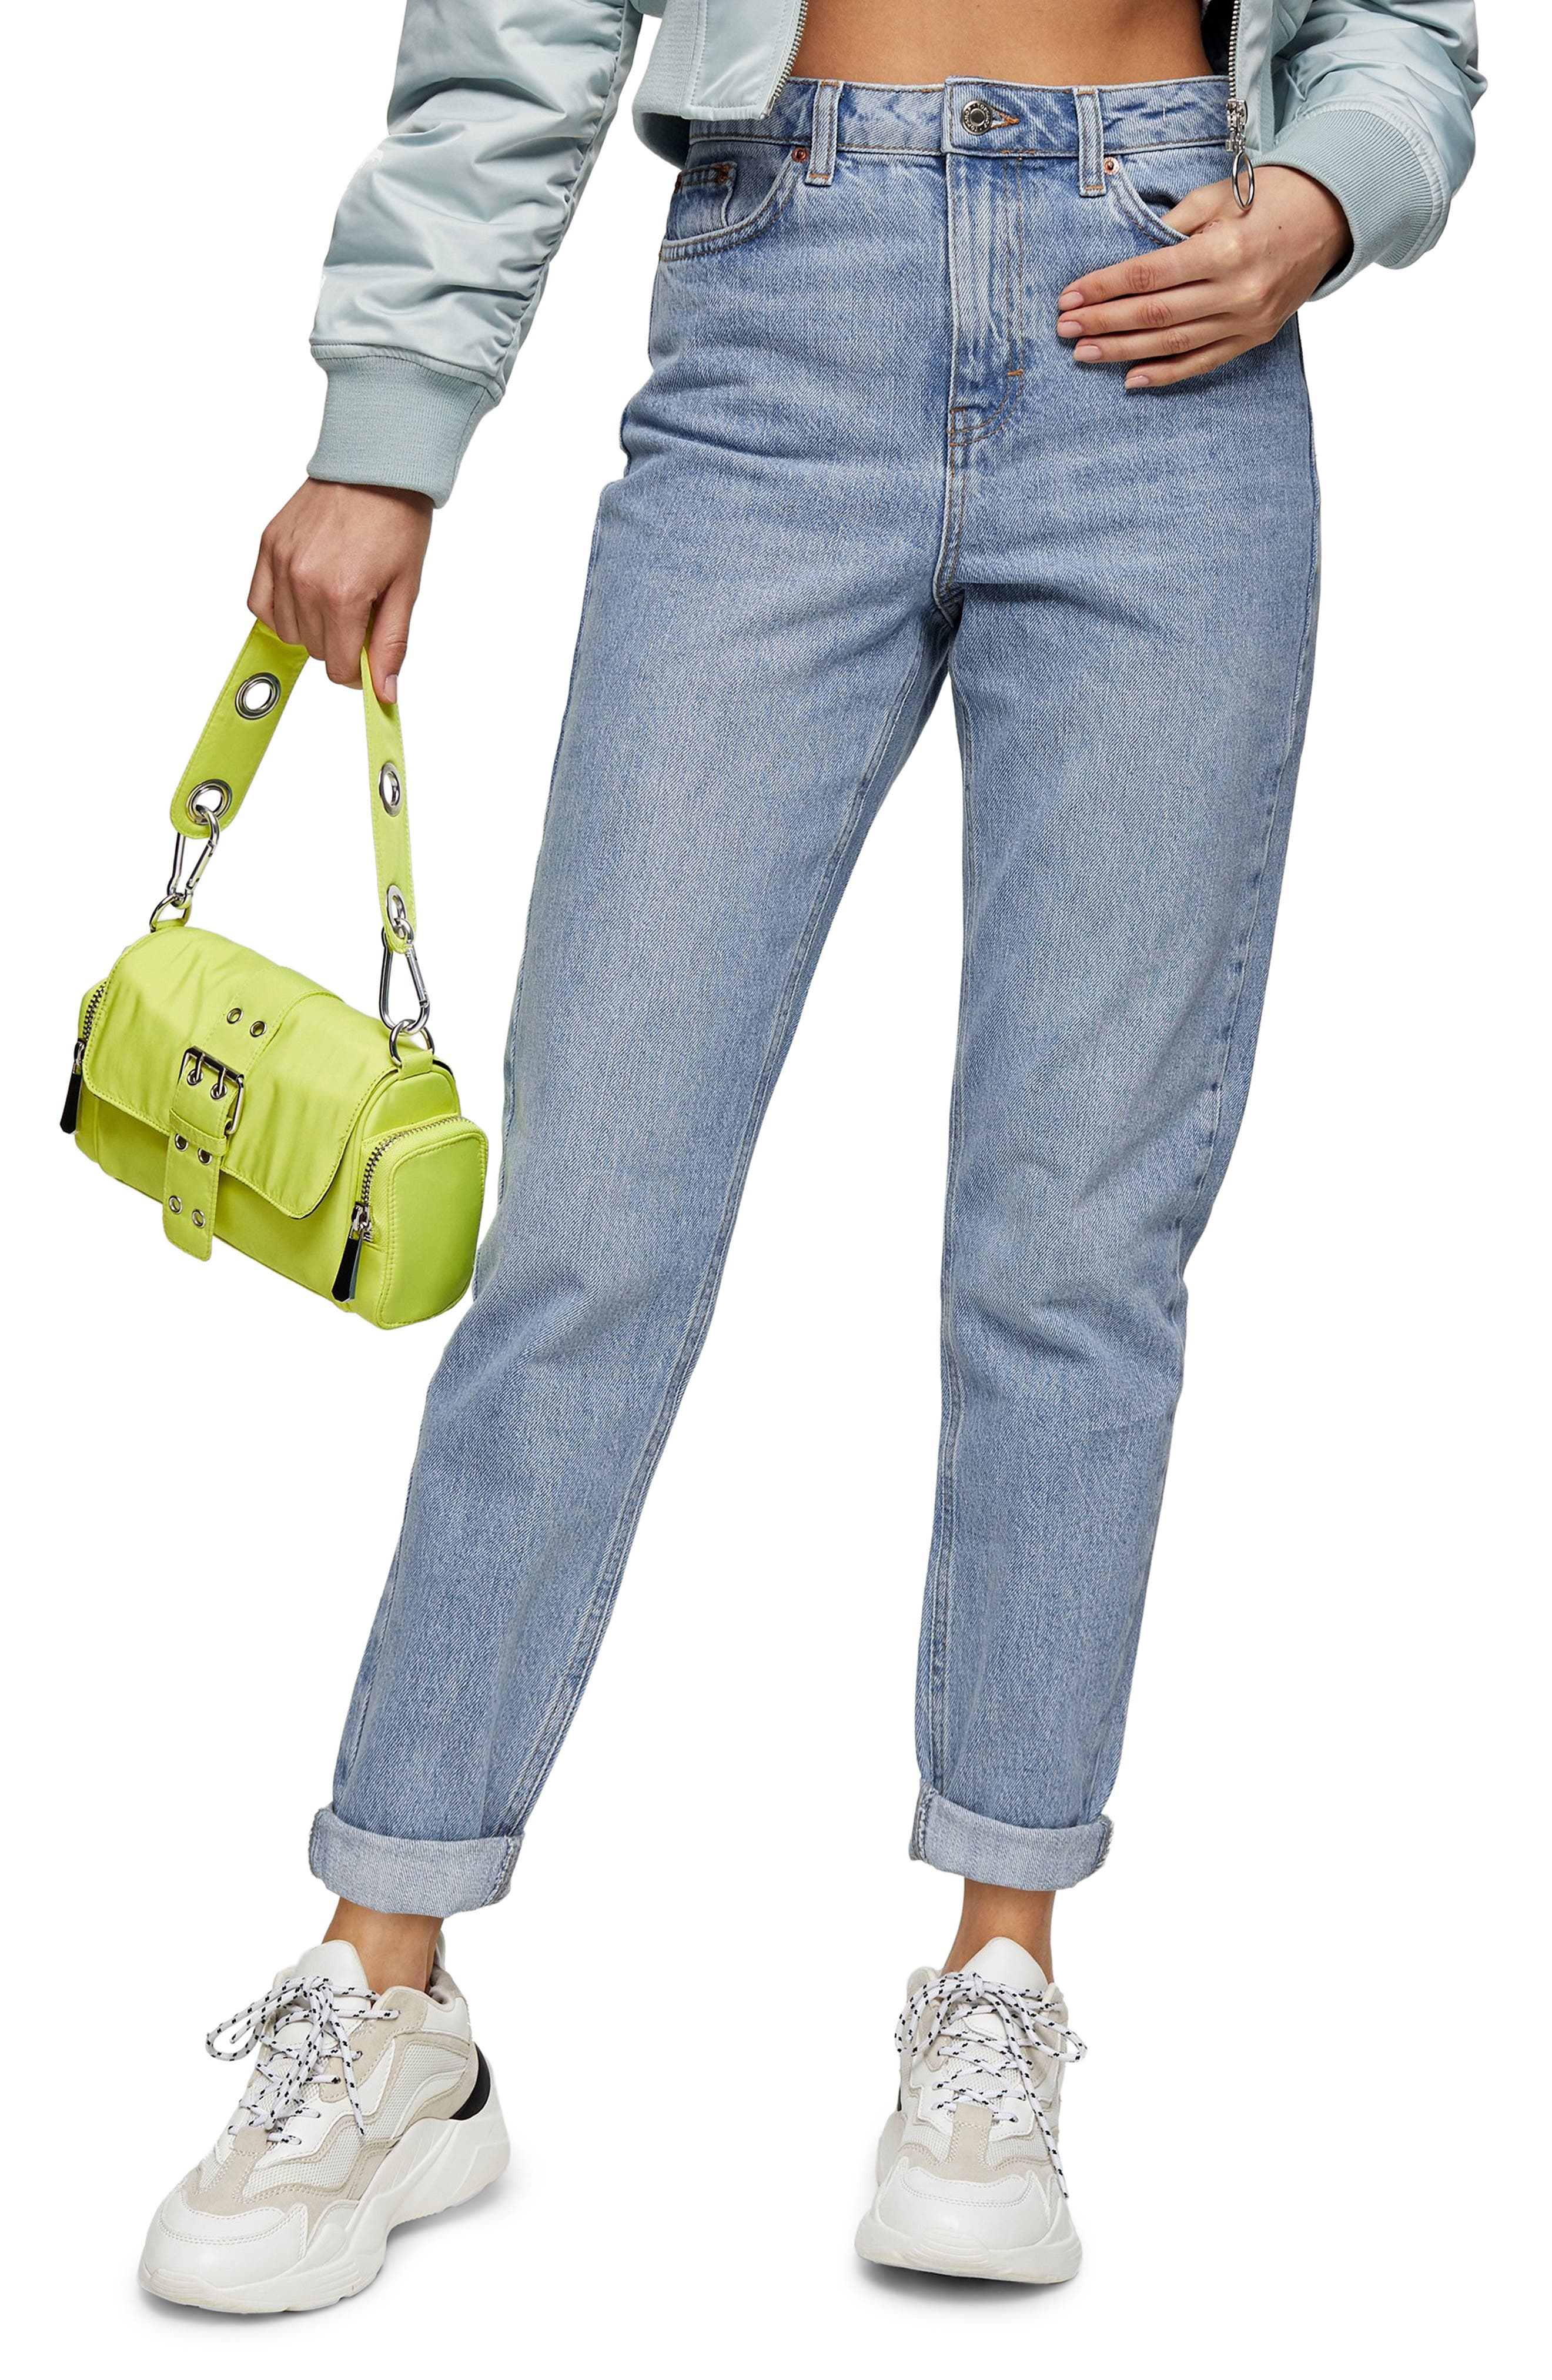 These modern mom jeans in nonstretch denim are finished in a perfectly bleached wash and cut with a high waist and tapered ankle-length cuffs. Style Name: Topshop Bleach Mom Jeans. Style Number: 5971631. Available in stores.